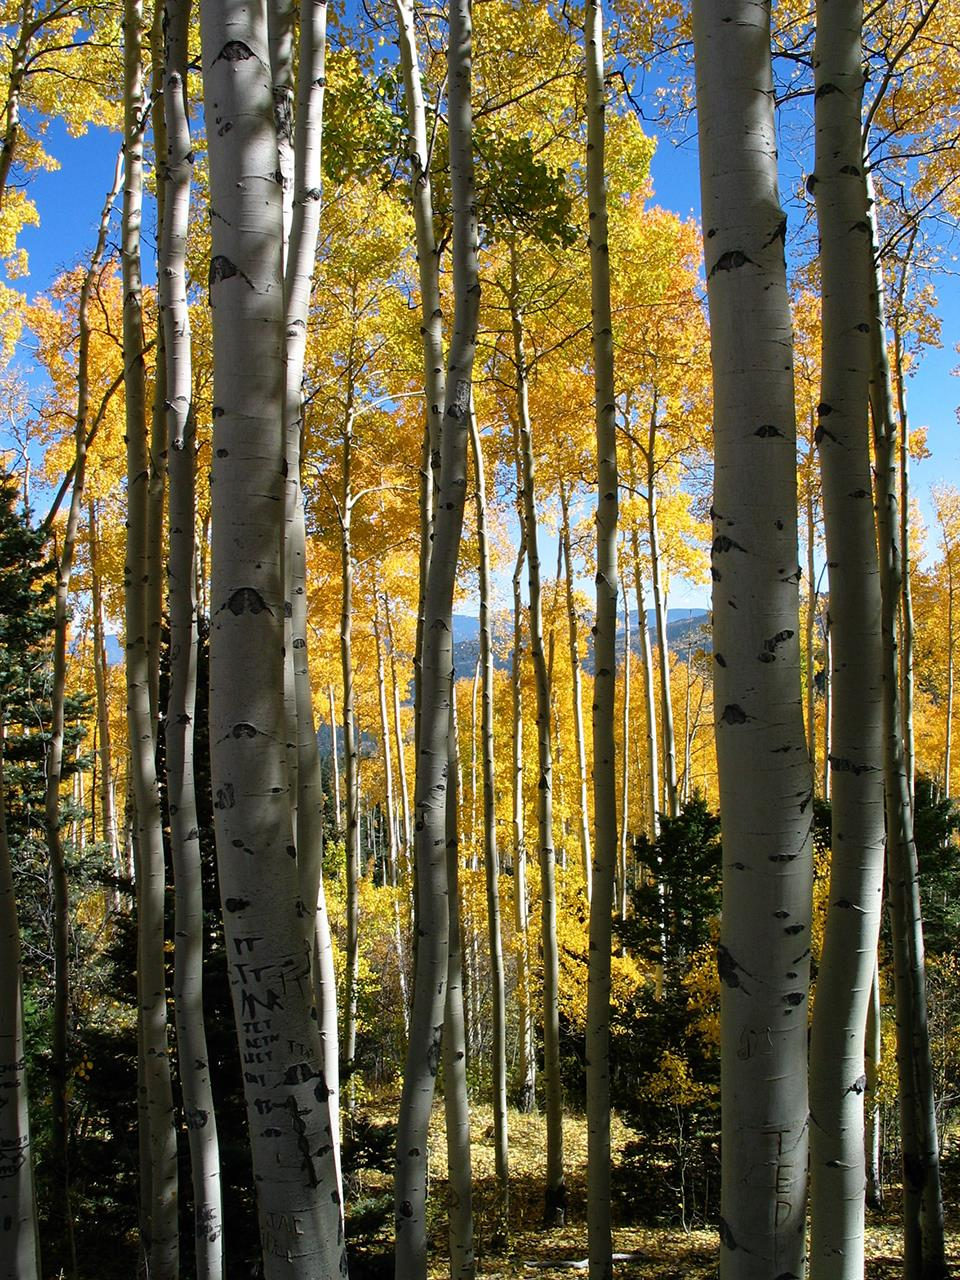 #Taos attraction #Taos #New Mexio #Fall Color #Carson National Forest